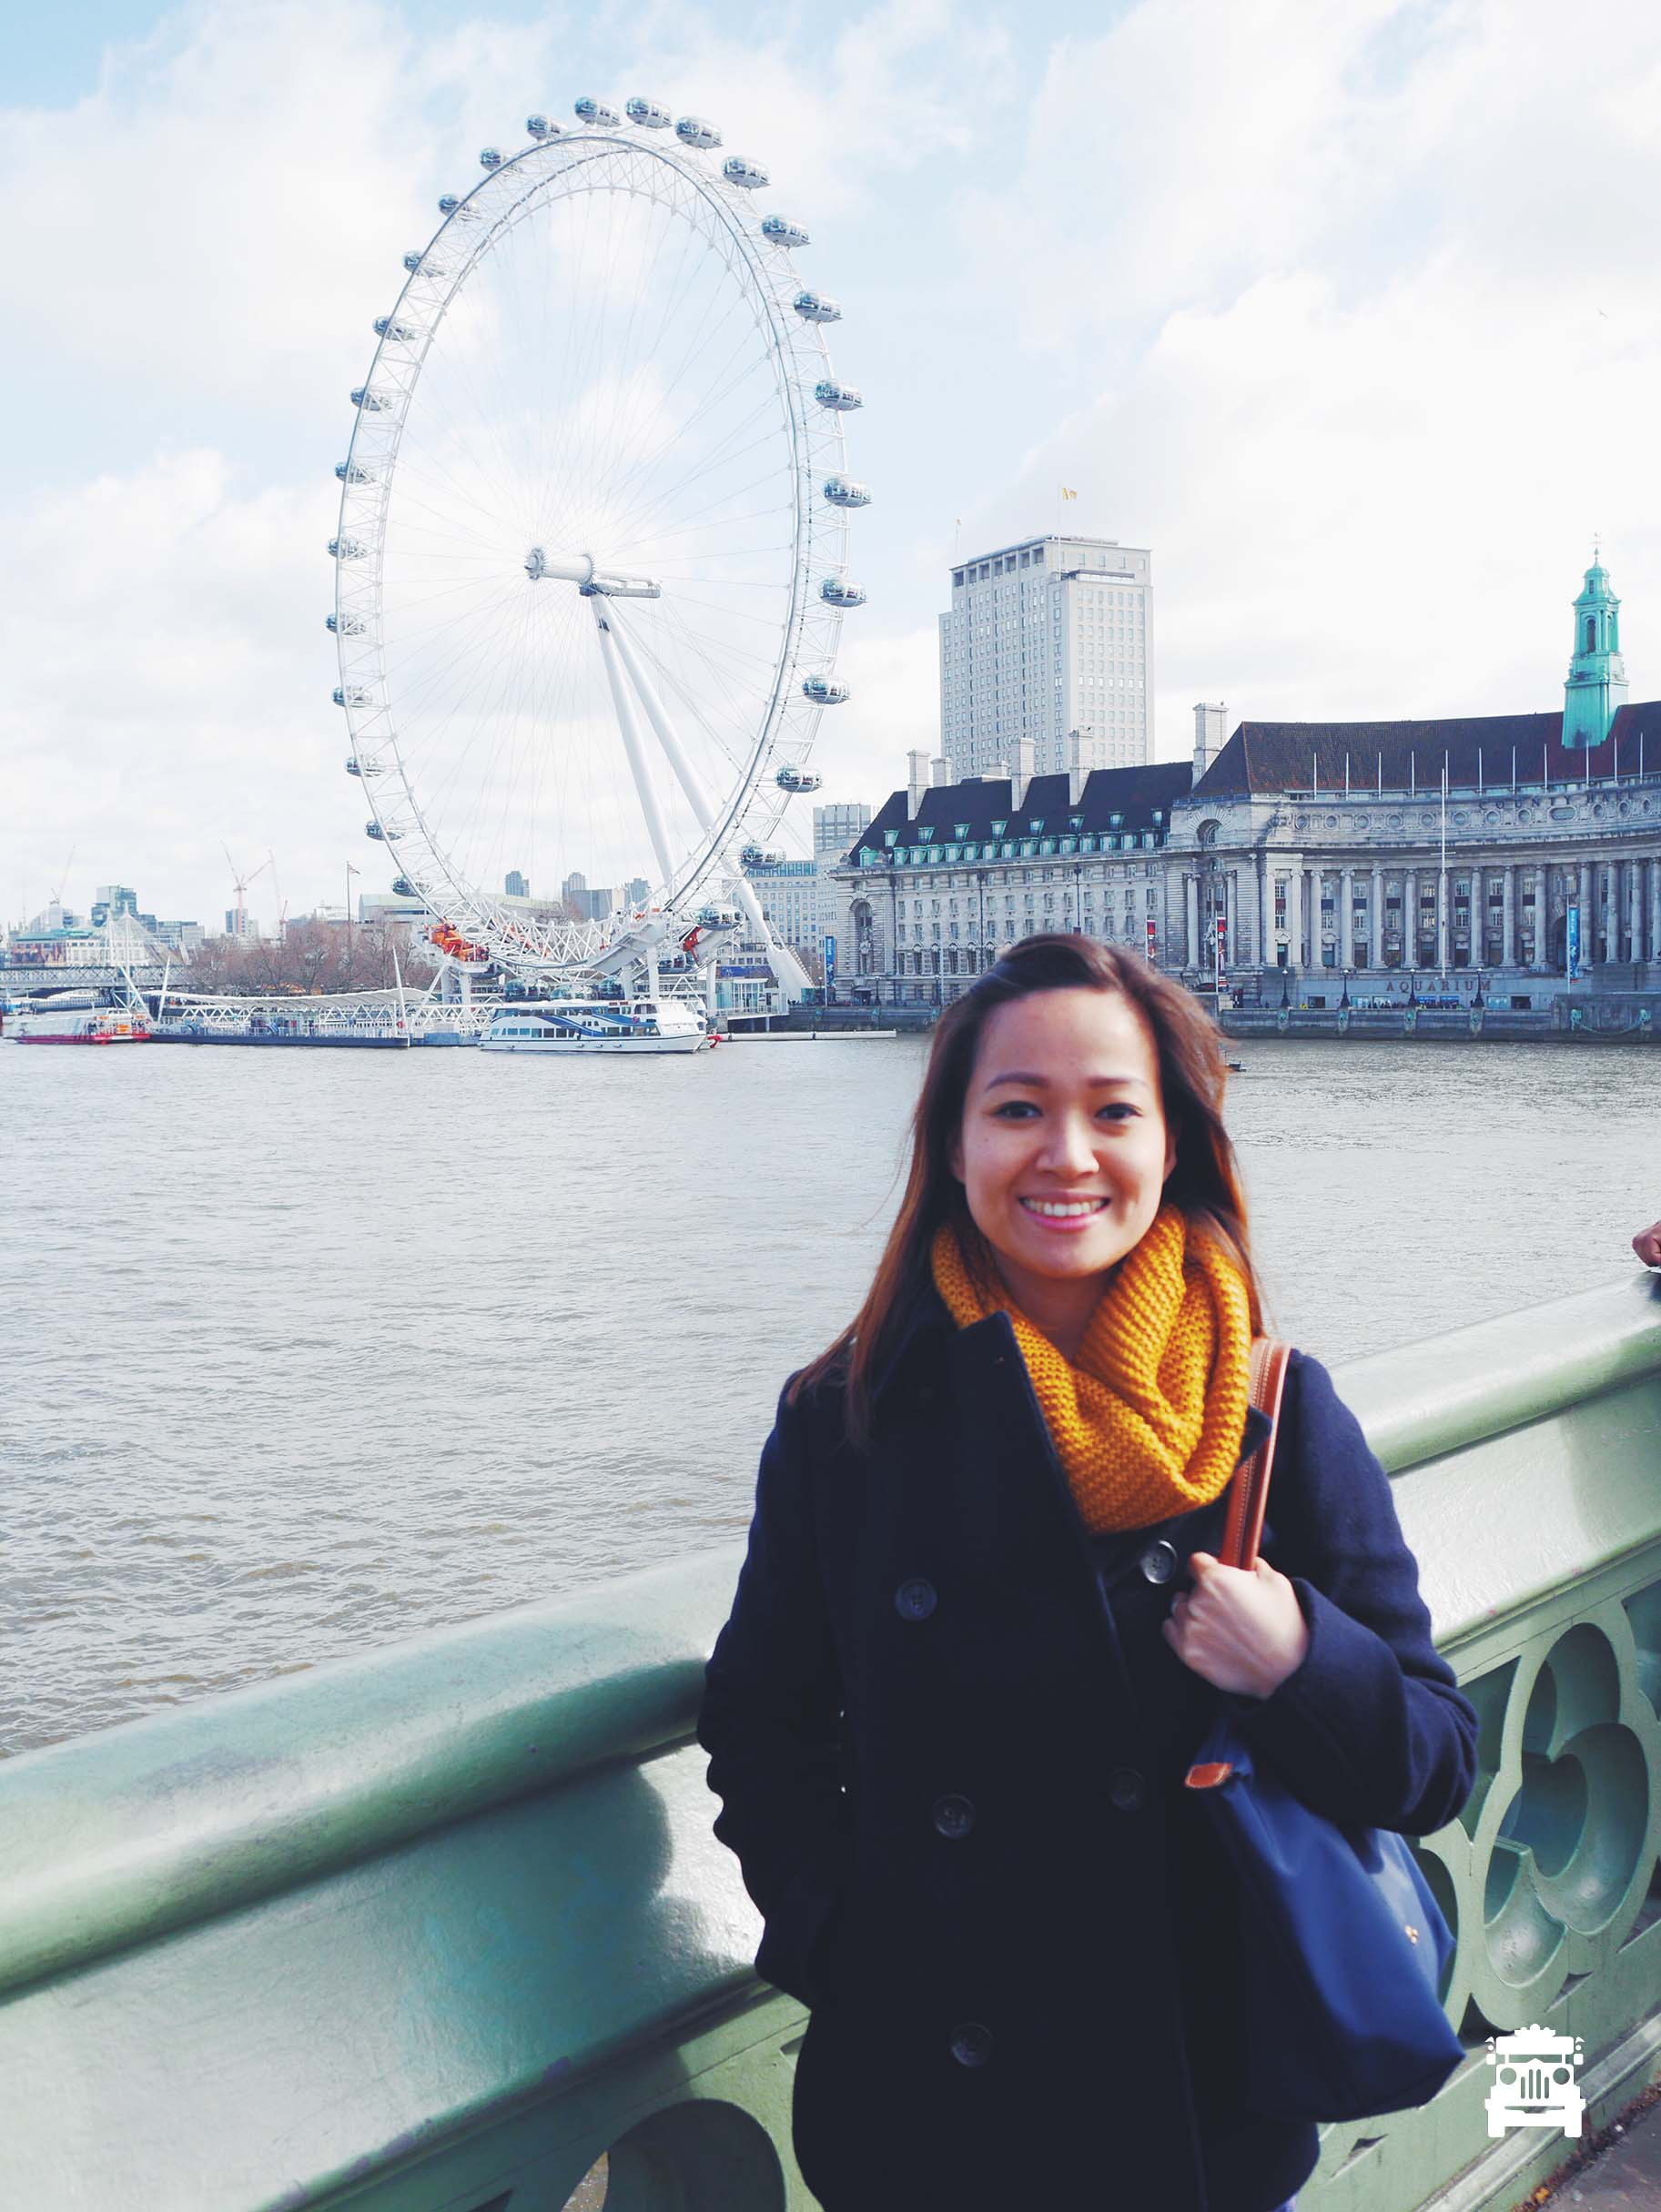 On Westminster Bridge with the London Eye and River Thames behind Wifey